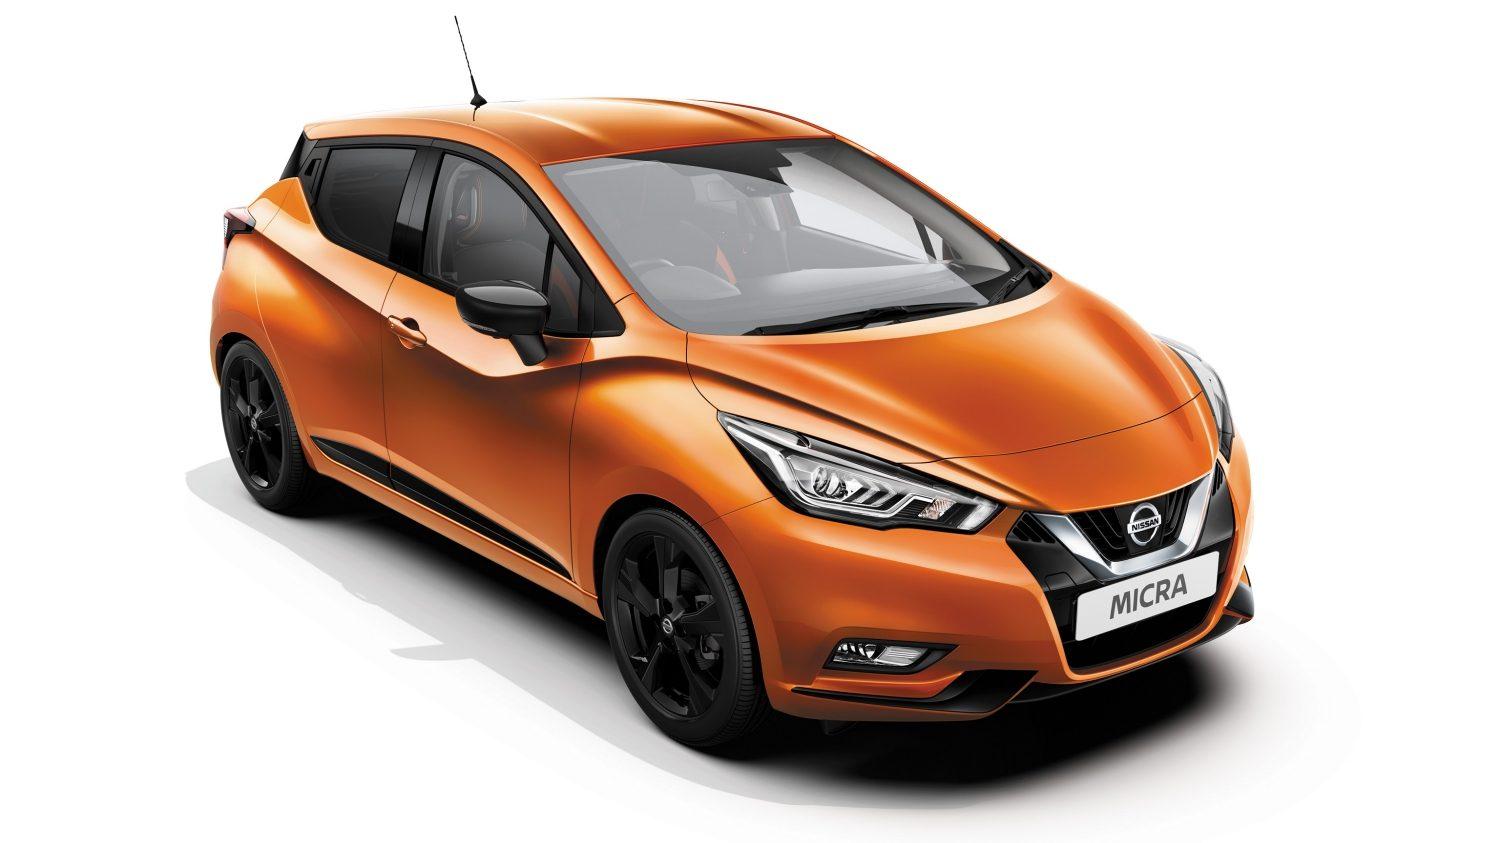 new nissan micra - city car